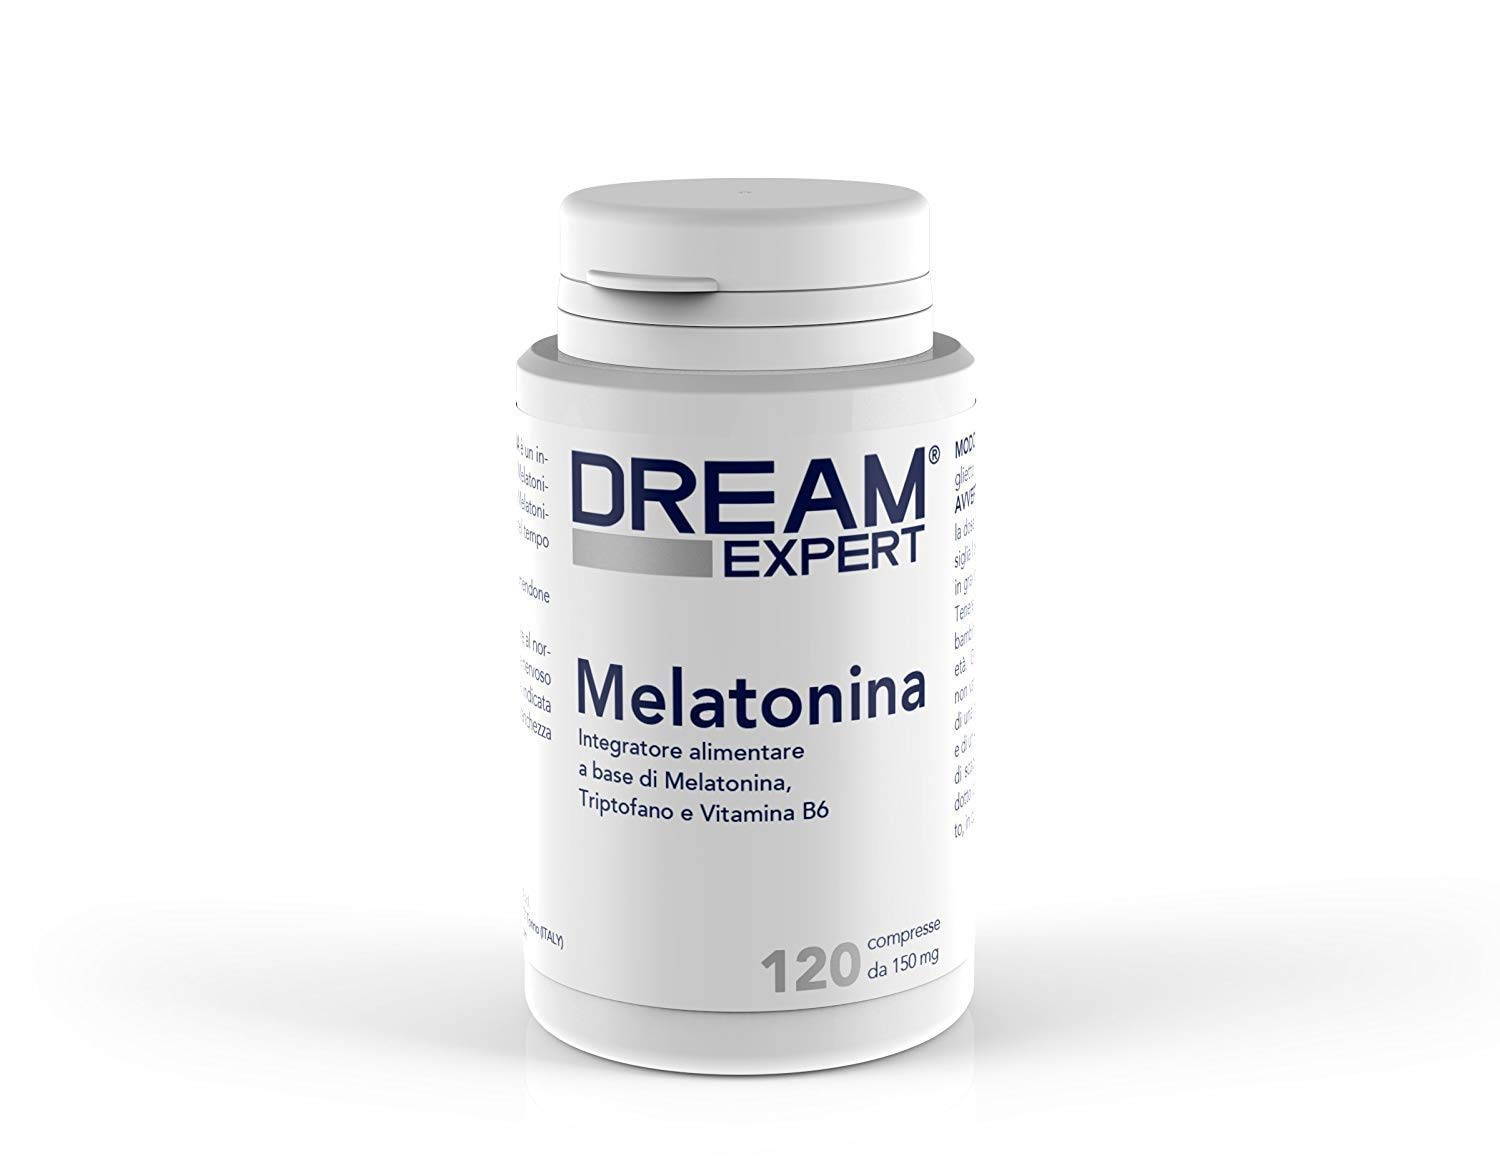 Dream Expert - 120 tabletas - Suplemento con Melatonina (1 mg) + Triptófano (75 mg) y Vitamina B6 (1,4 mg) - ACCIÓN RÁPIDA: Amazon.es: Salud y cuidado ...